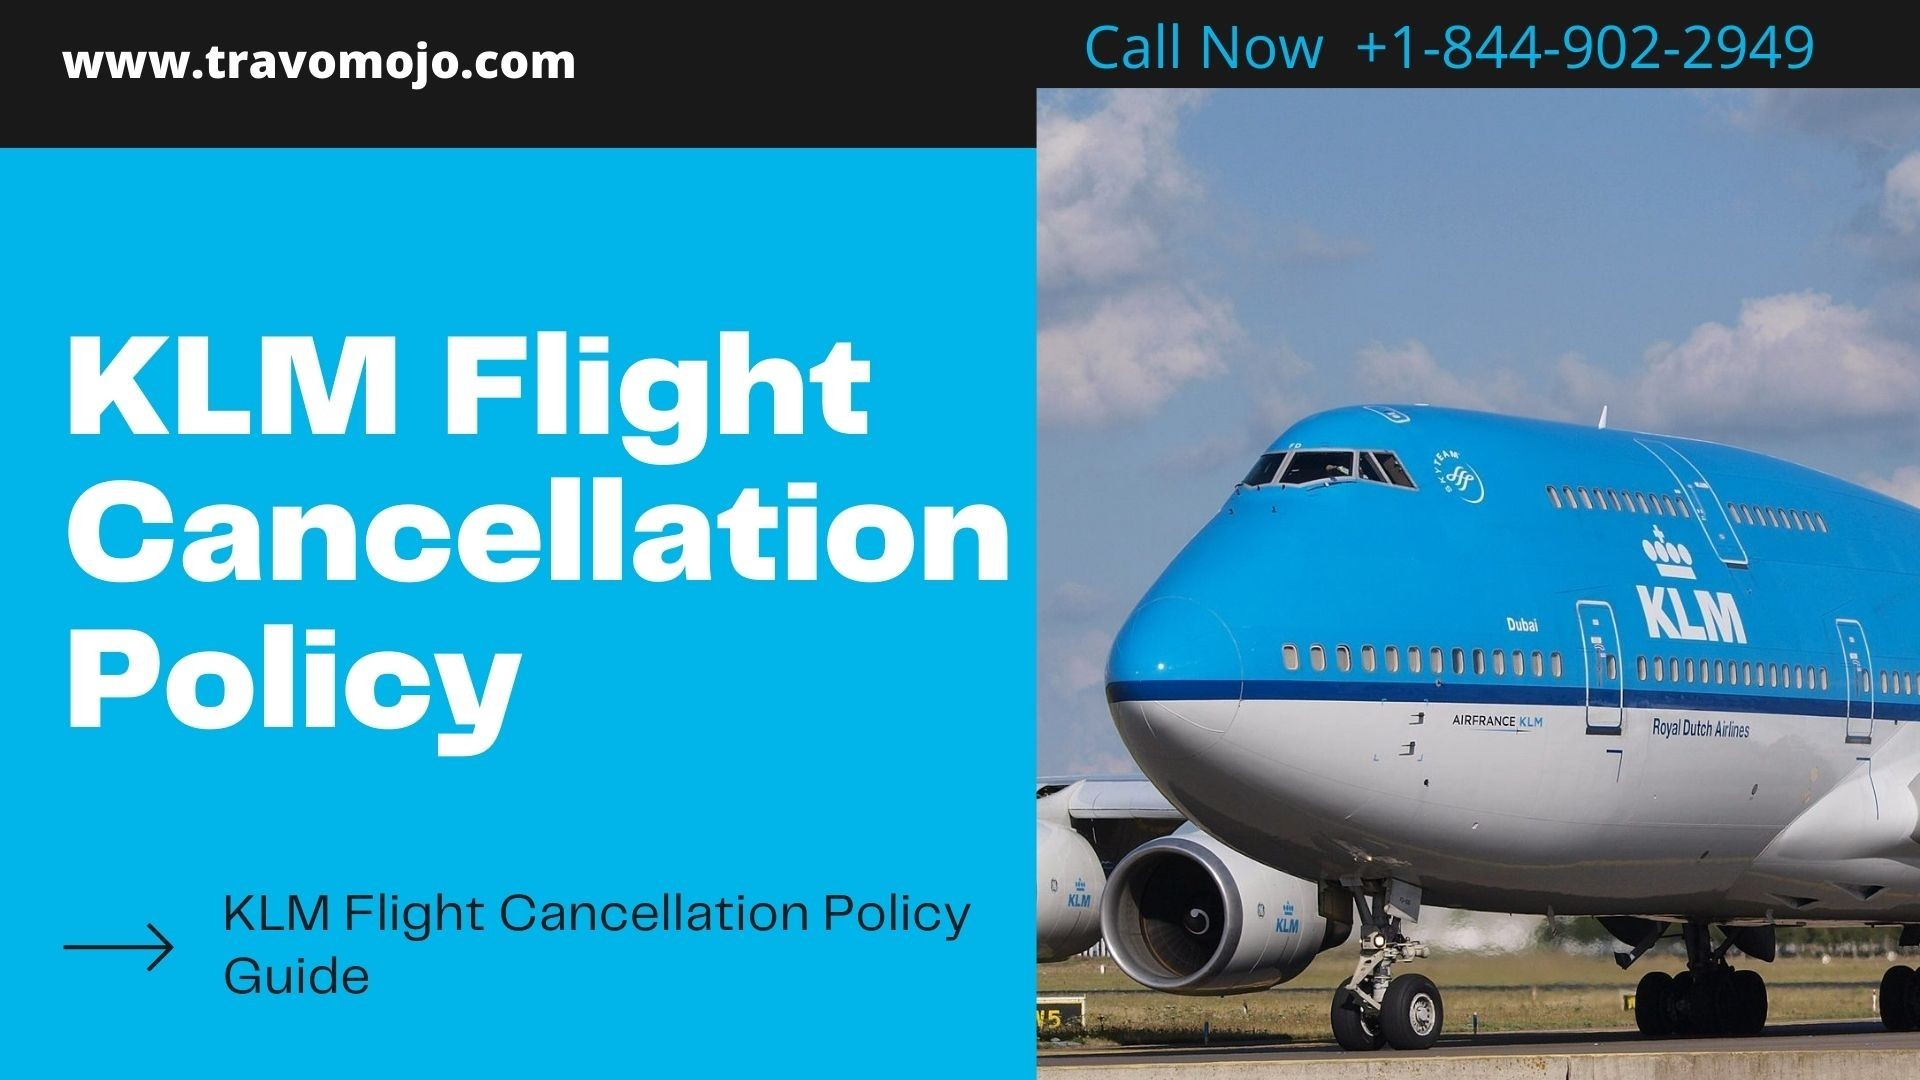 Easy way to know KLM Flight Cancellation Policy